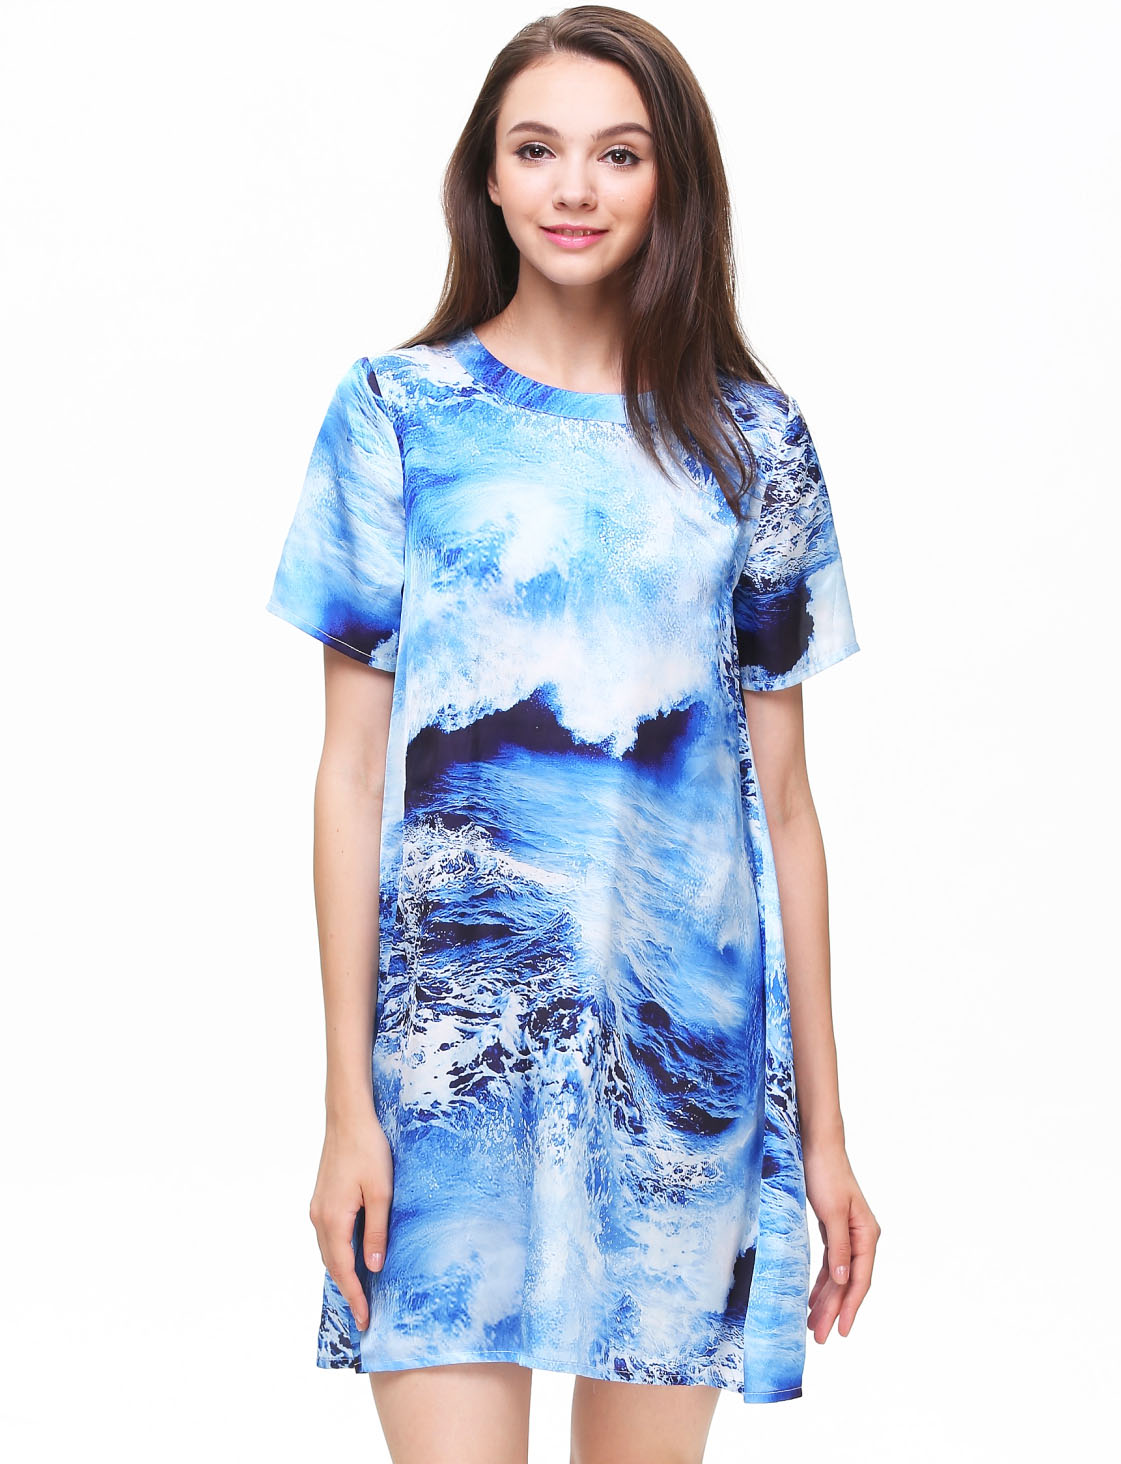 Blue Short Sleeve Sea Print Loose Dress - Sheinside.com